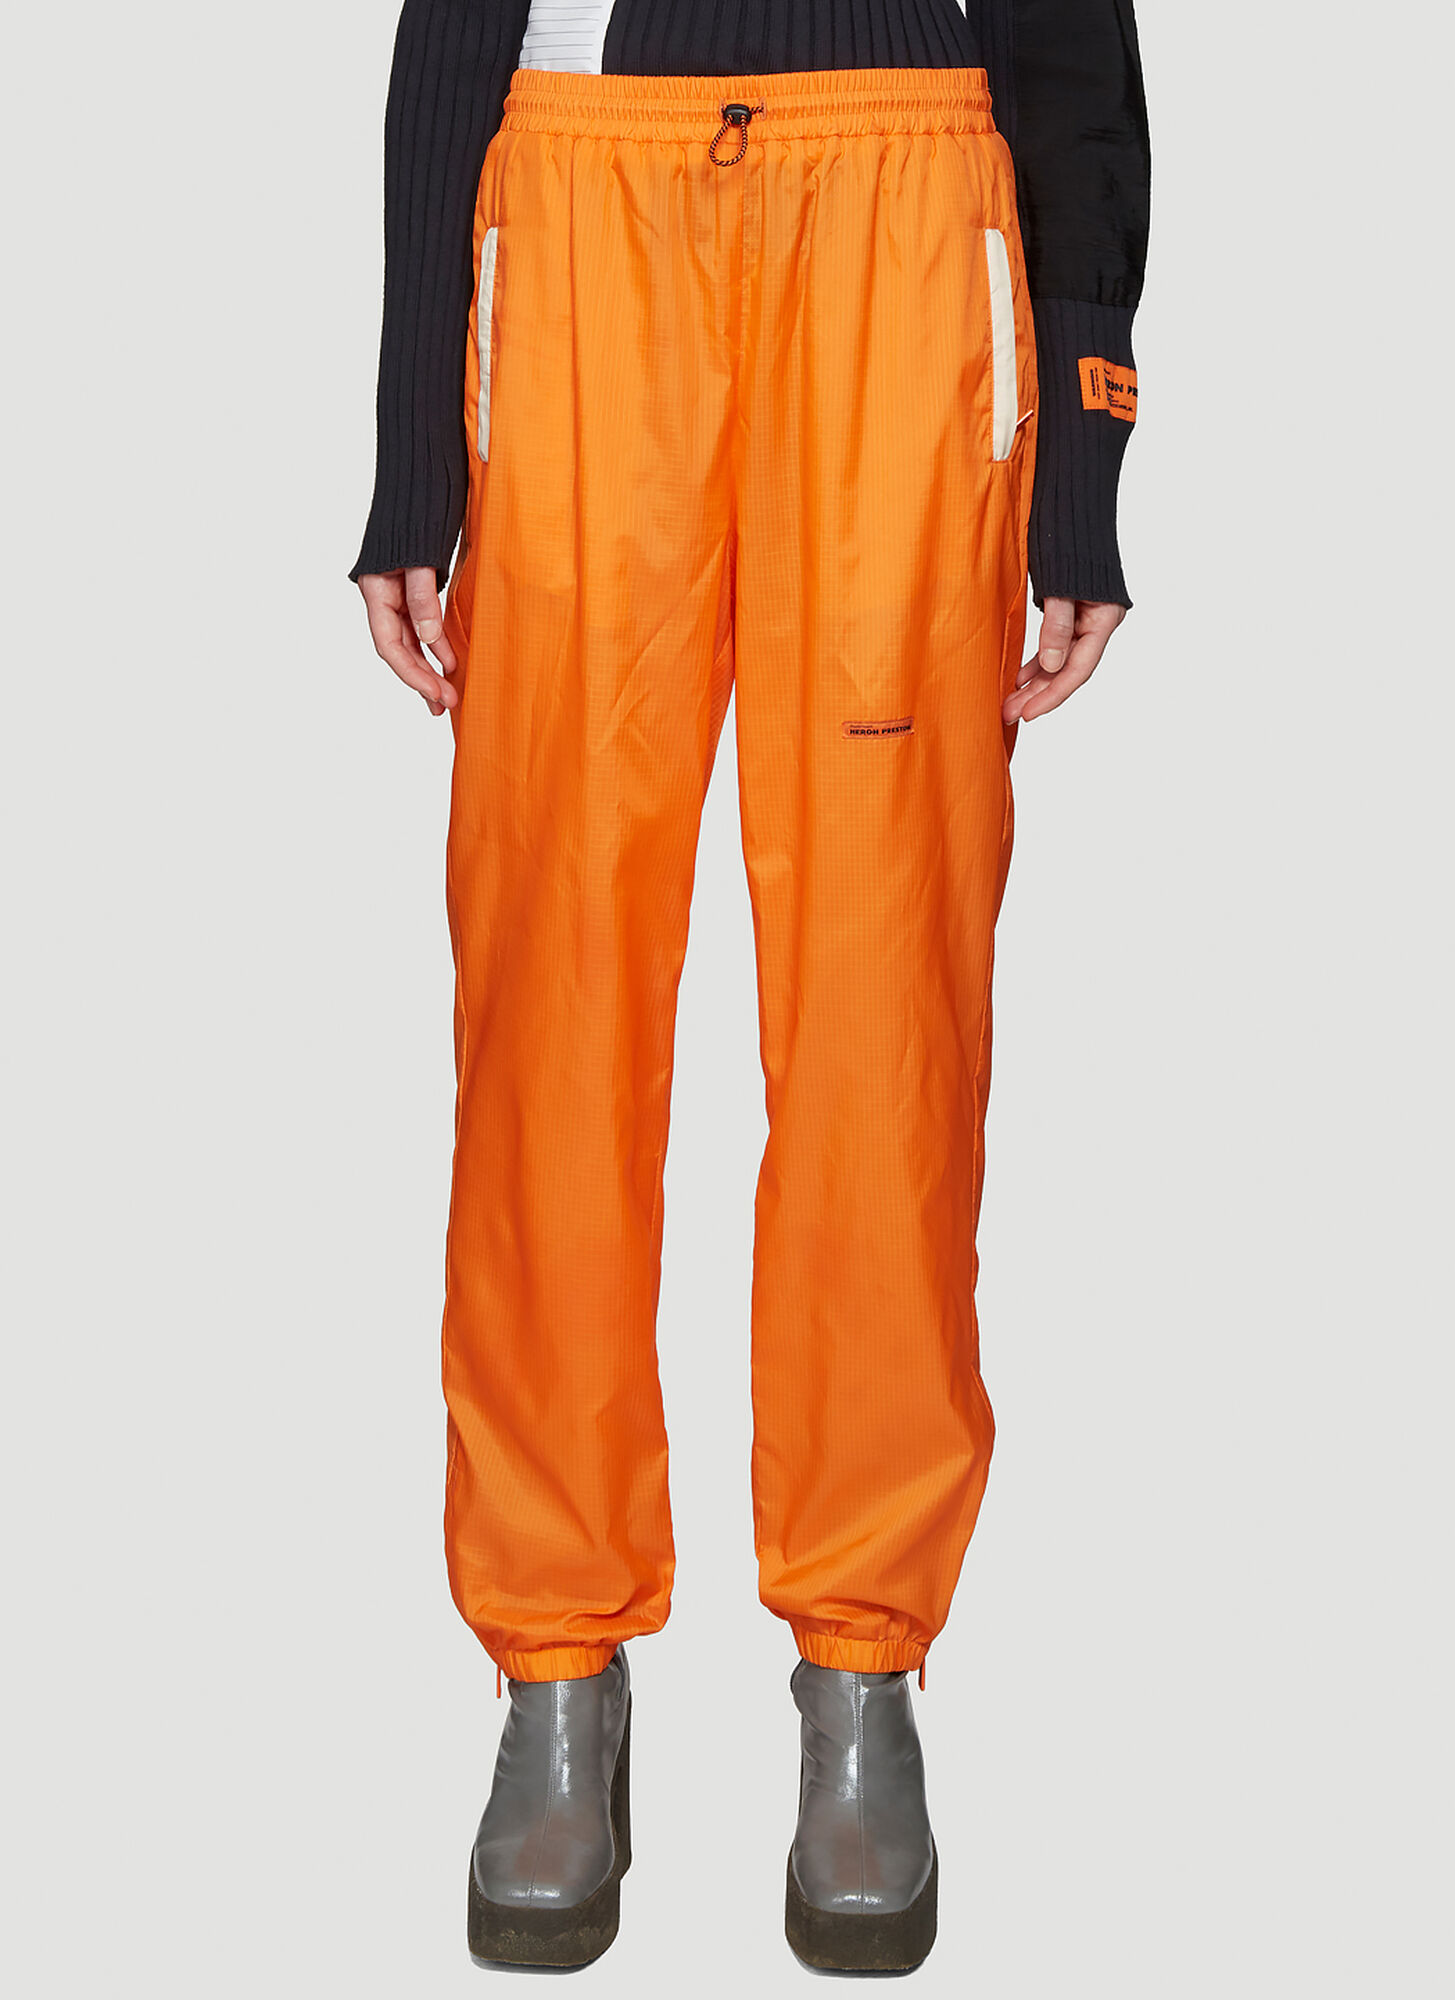 Heron Preston Tapered Pants in Orange